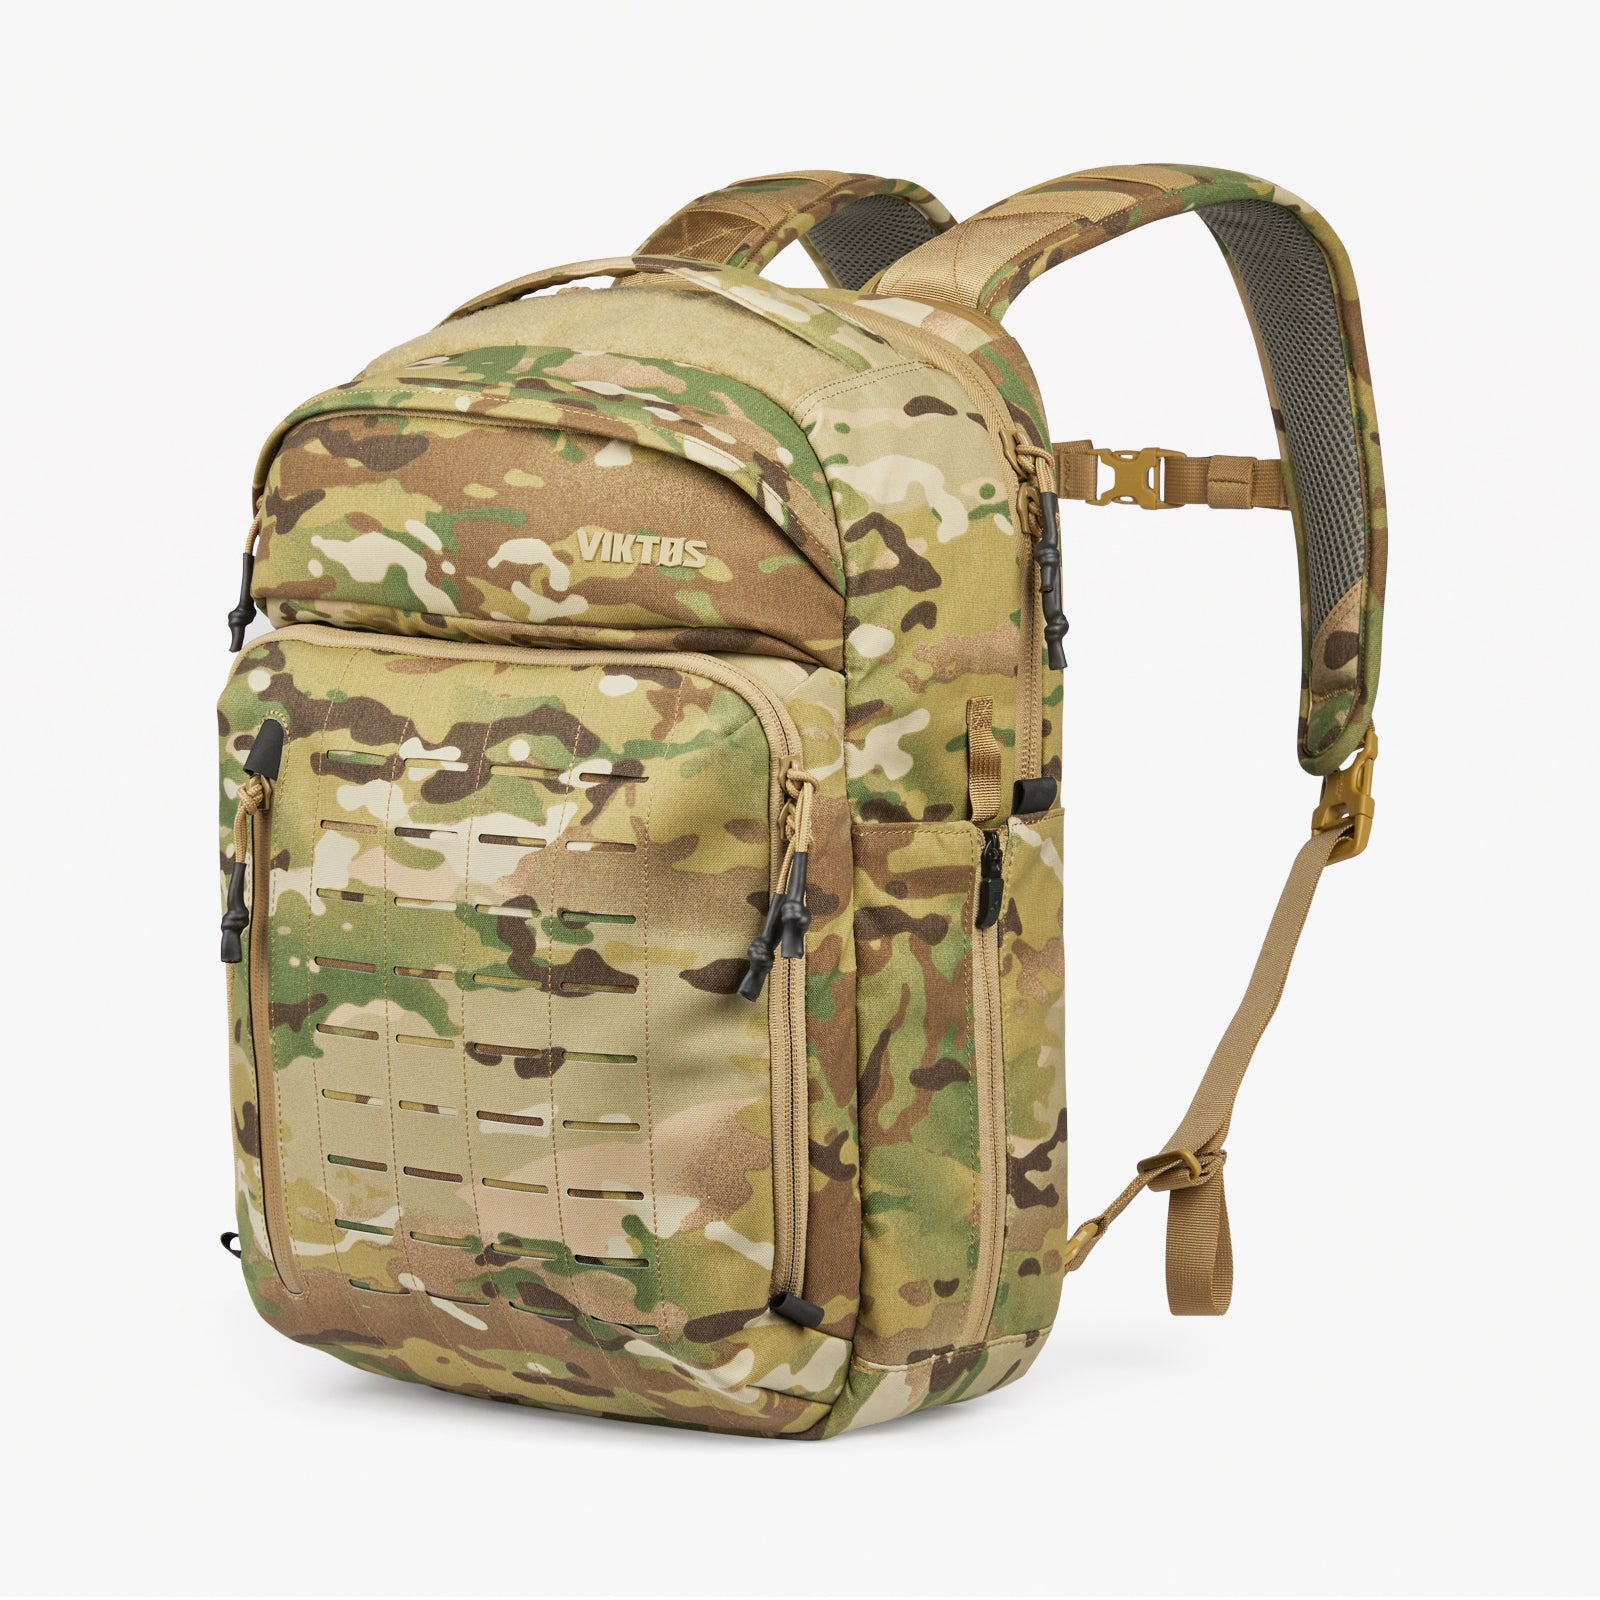 Viktos Perimeter 25 Backpack